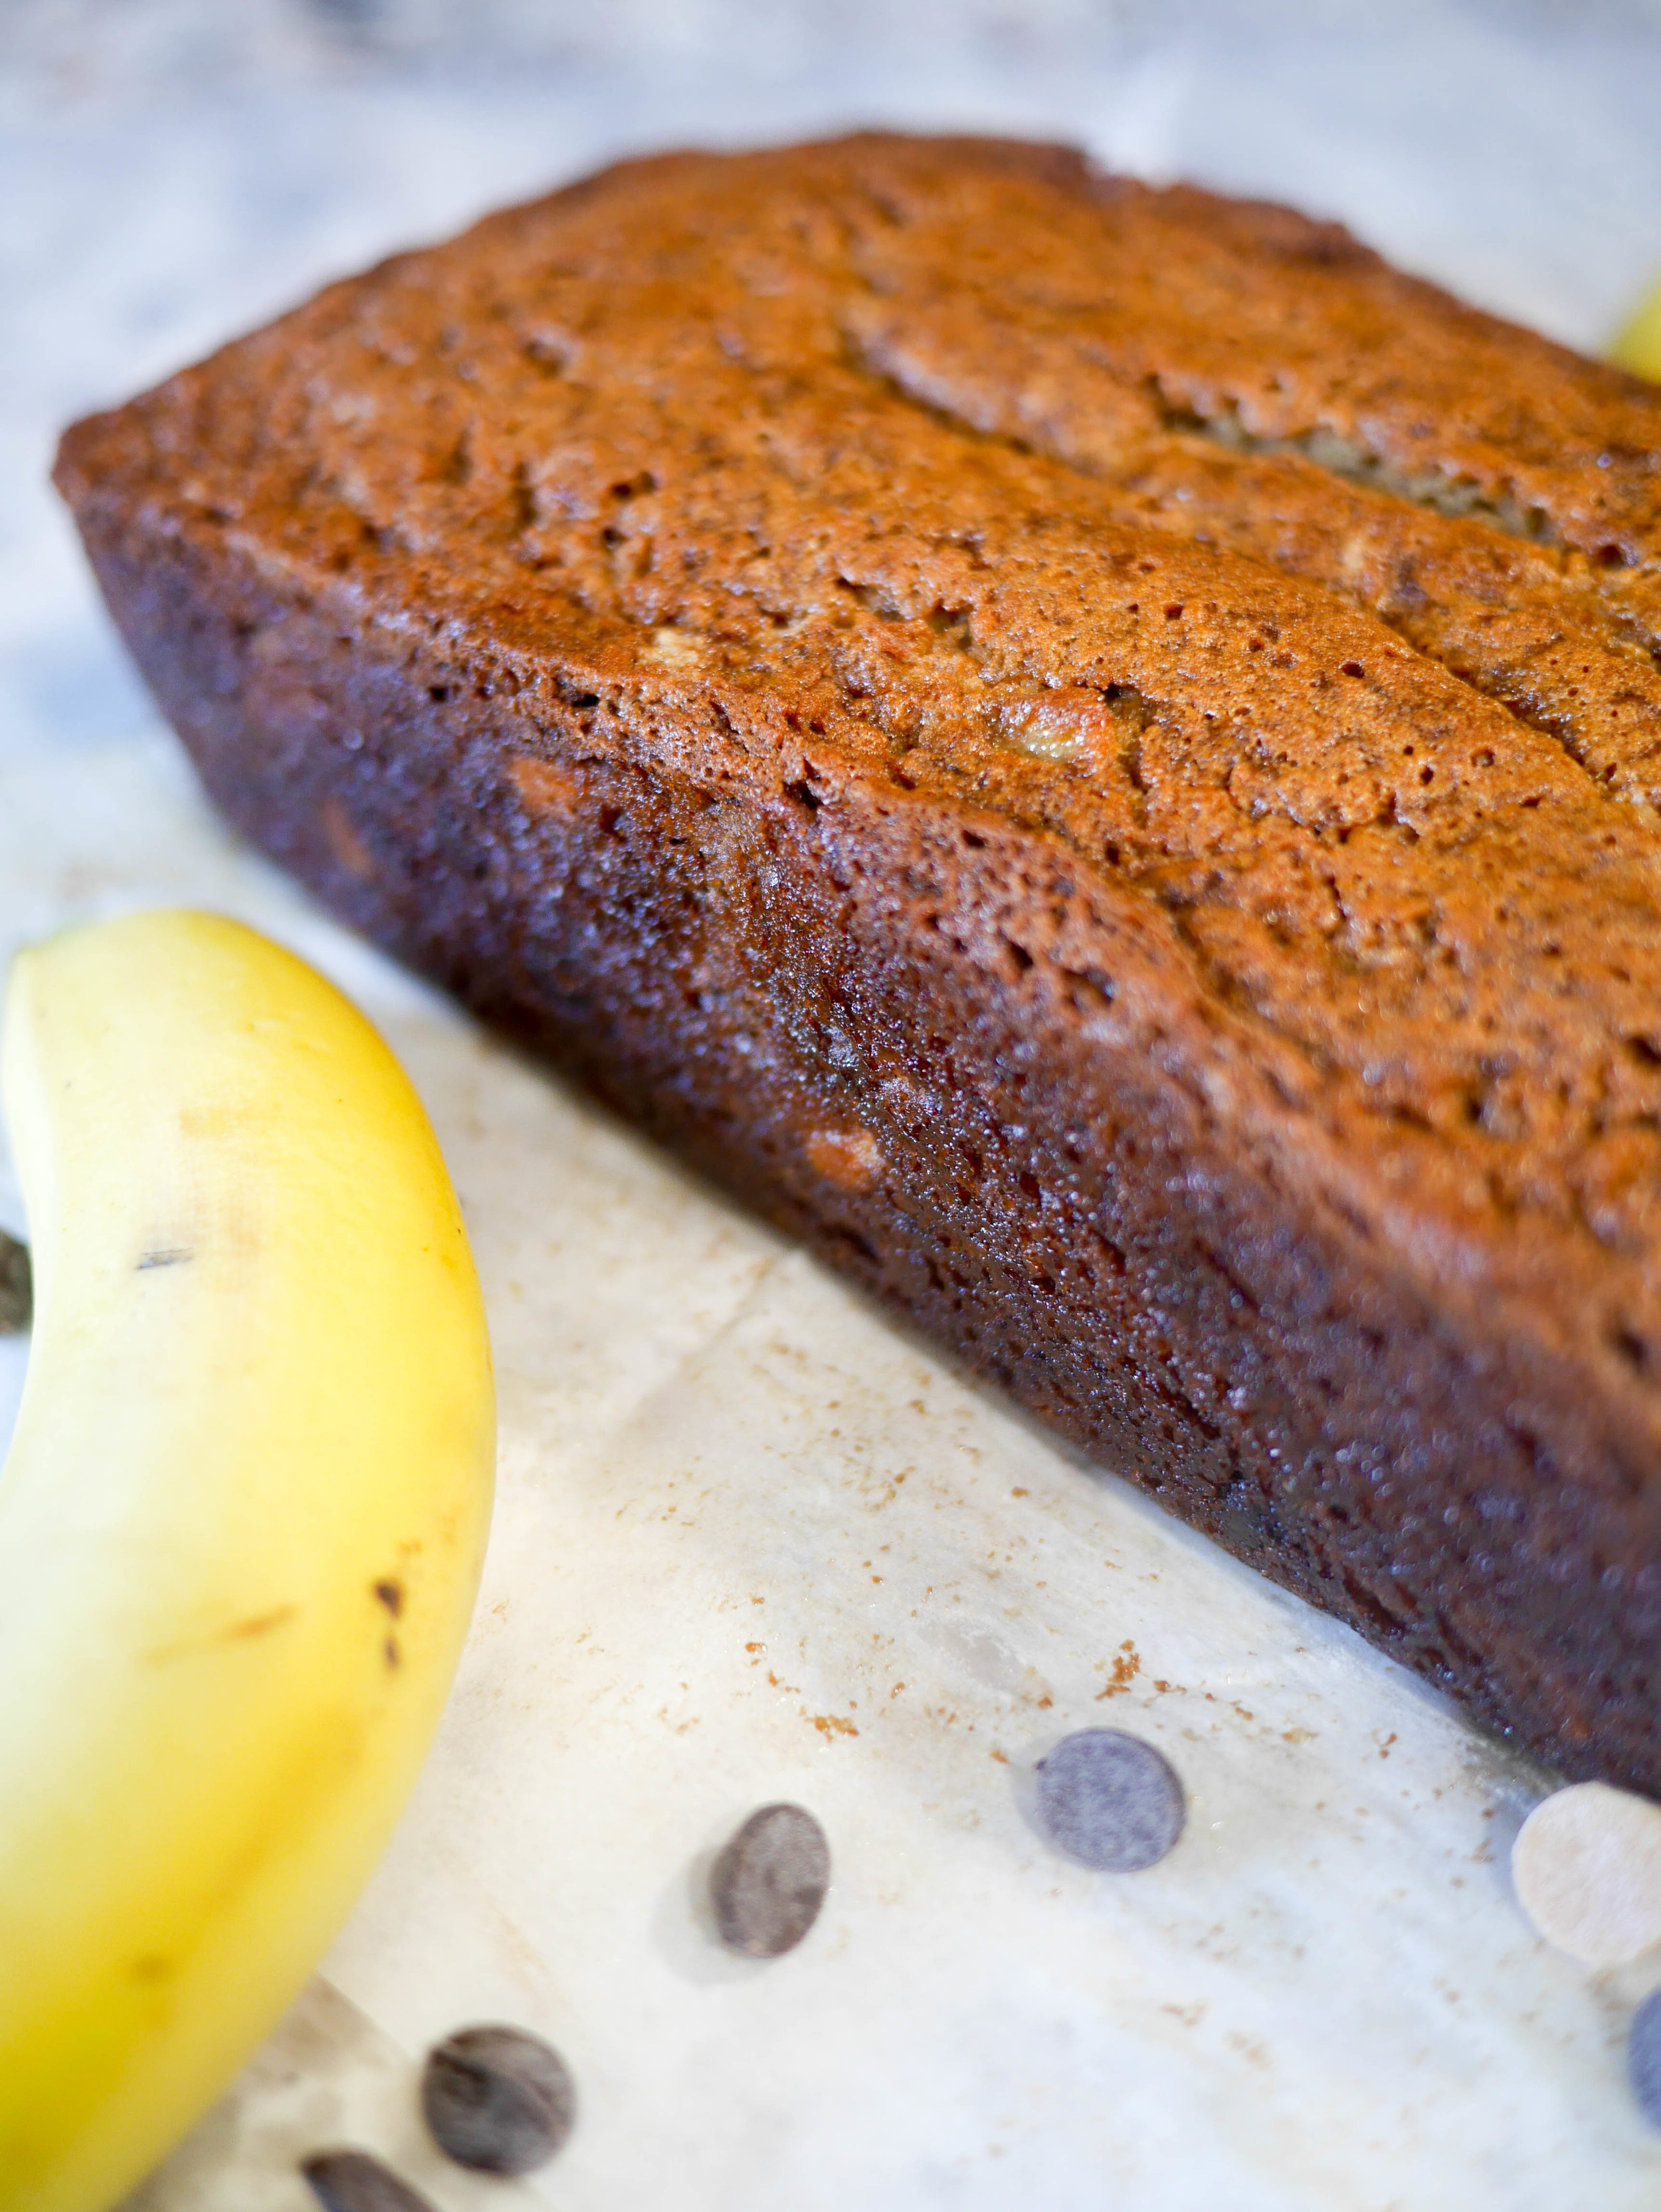 Subtle peanut butter flavor and chocolate chips make this banana bread the decadent solution to satisfy that sweet tooth.